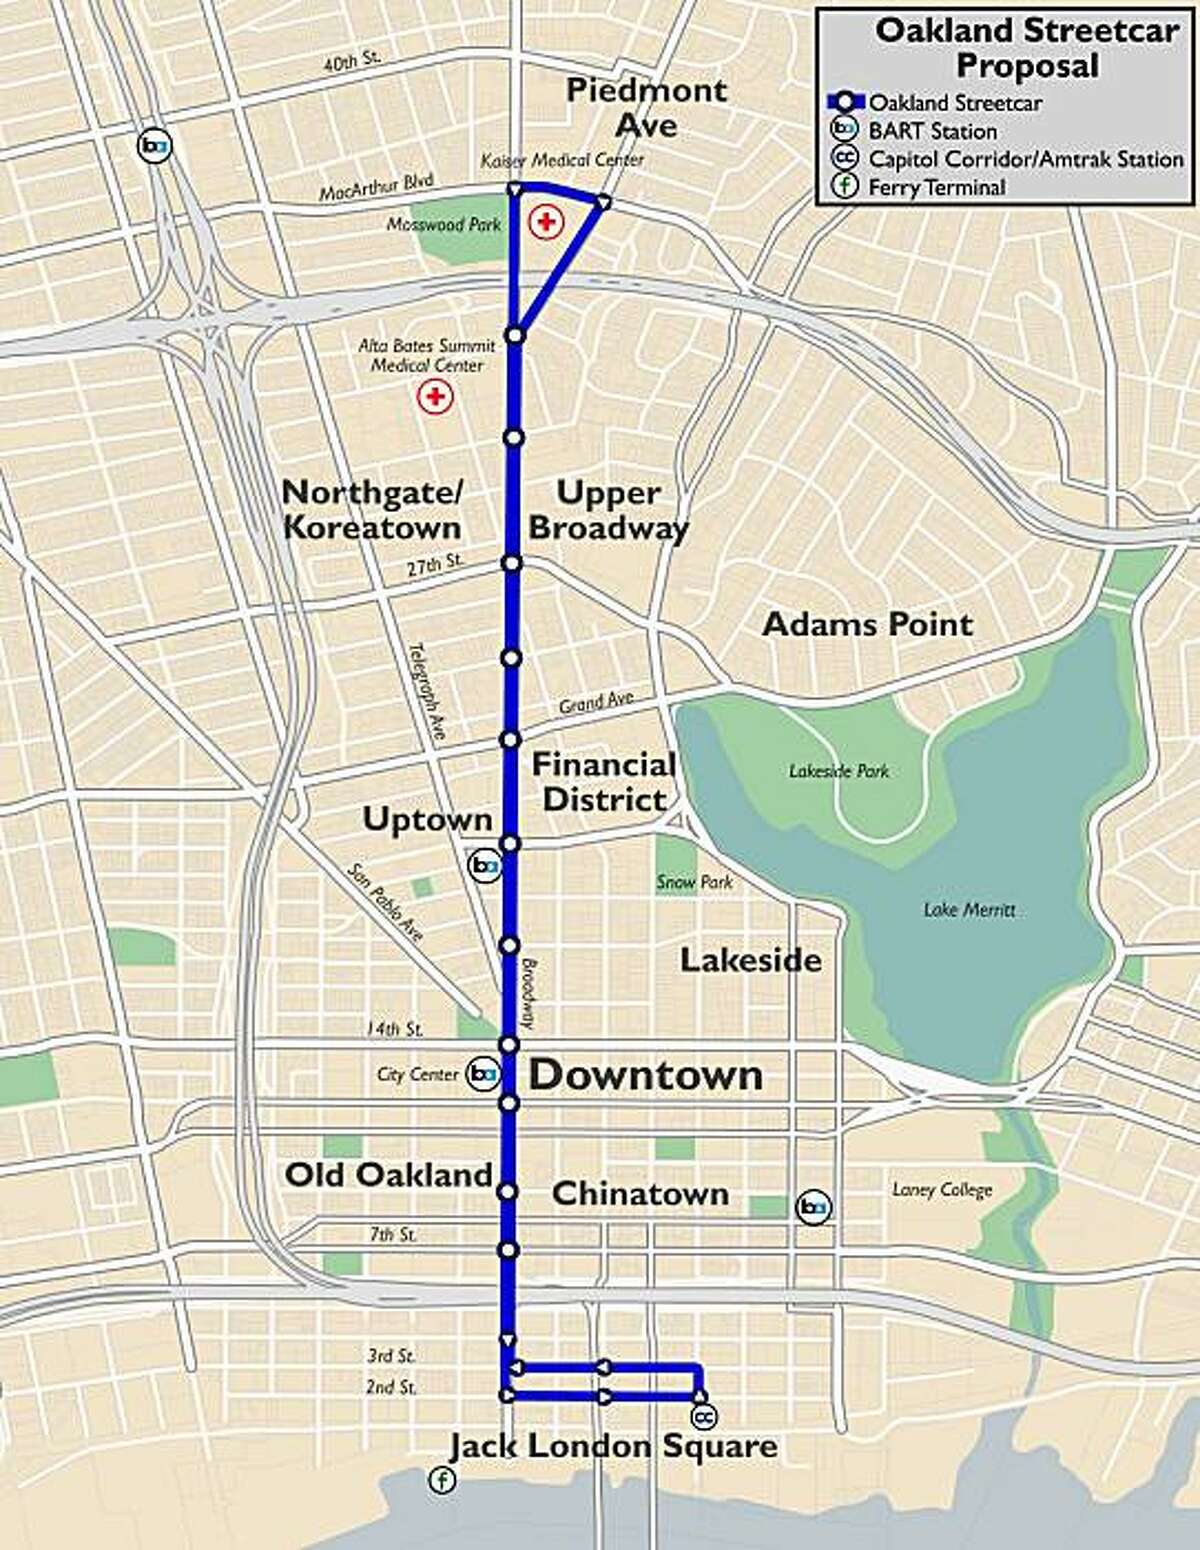 This map shows a streetcar line in Oakland proposed by Stanford University undergraduate student Daniel Jacobson